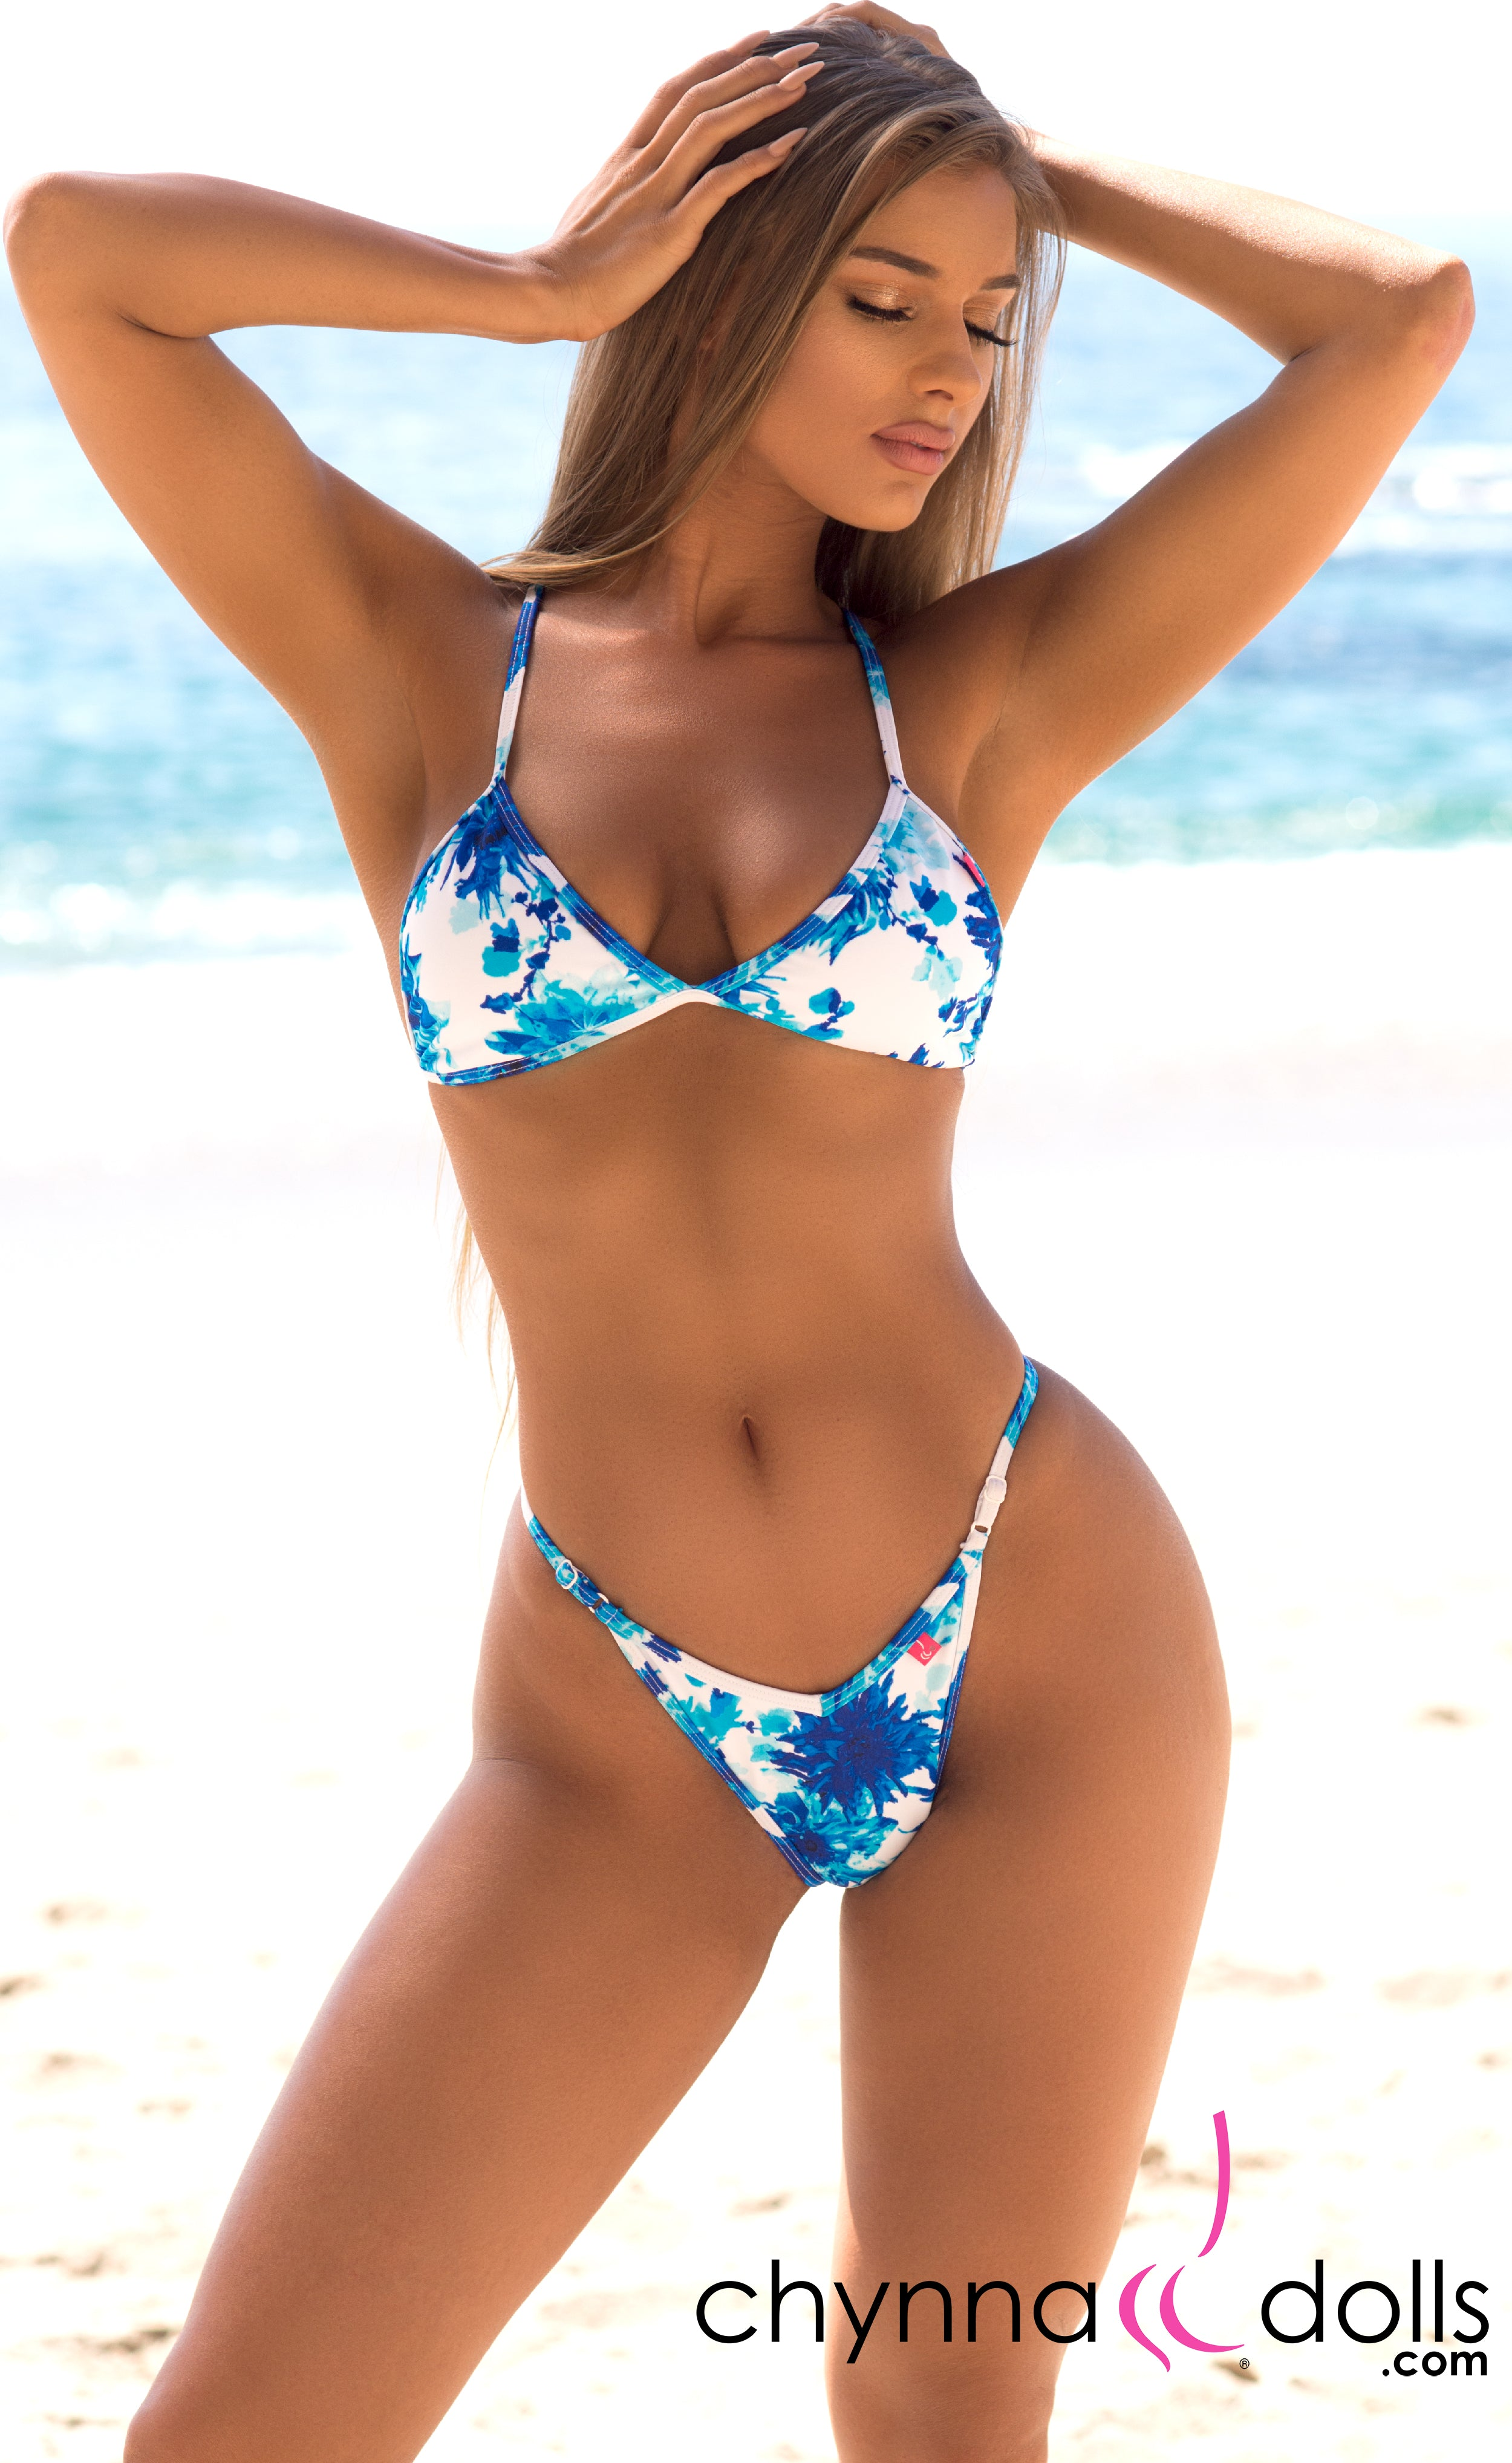 Sorrento: High Cut Bathing Suit in Blue Flowers on White